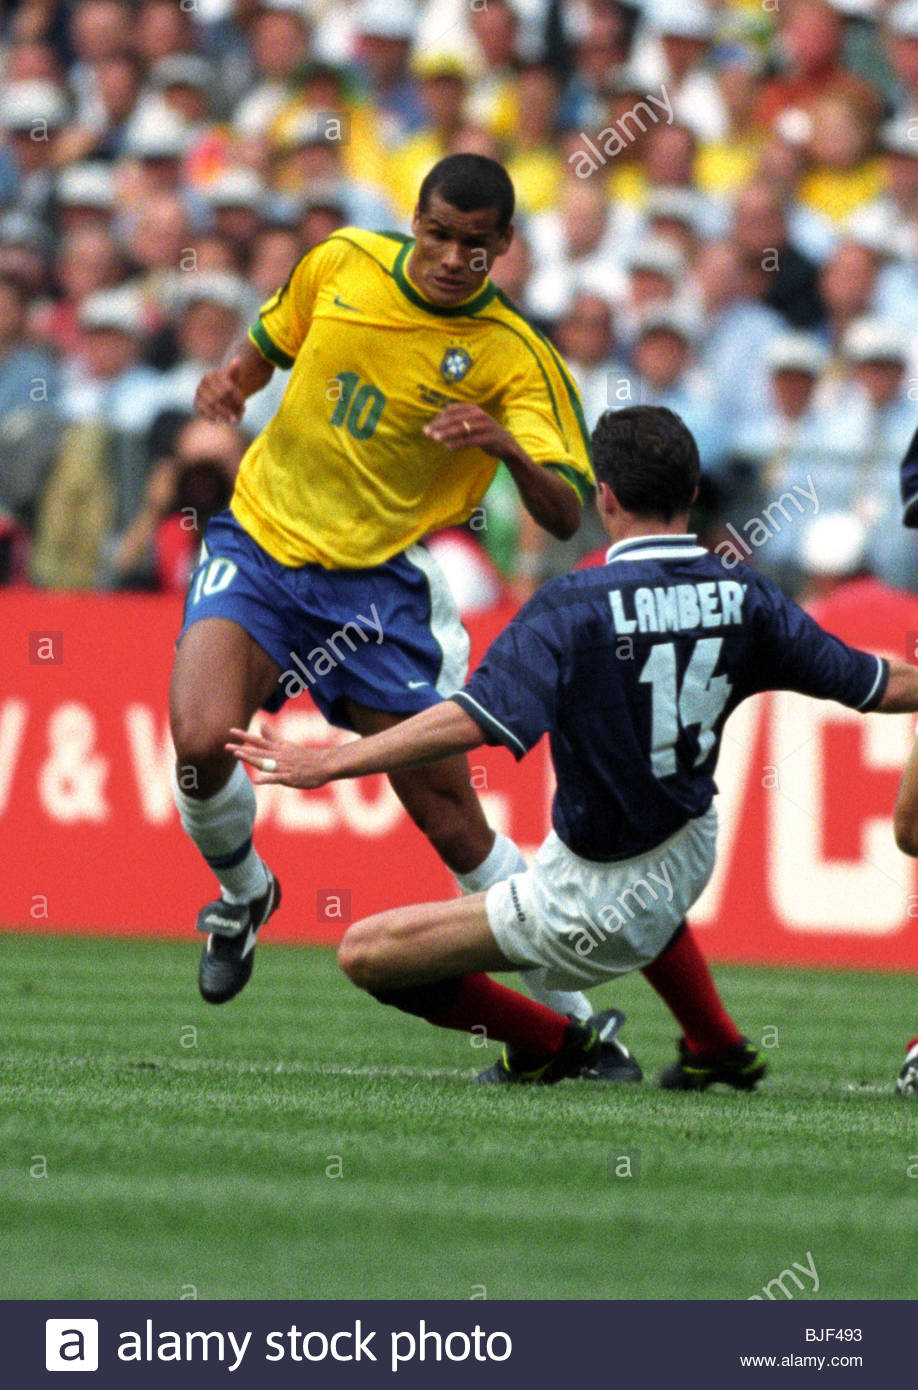 100698 fifa world cup 1998 brazil v scotland 21 stade